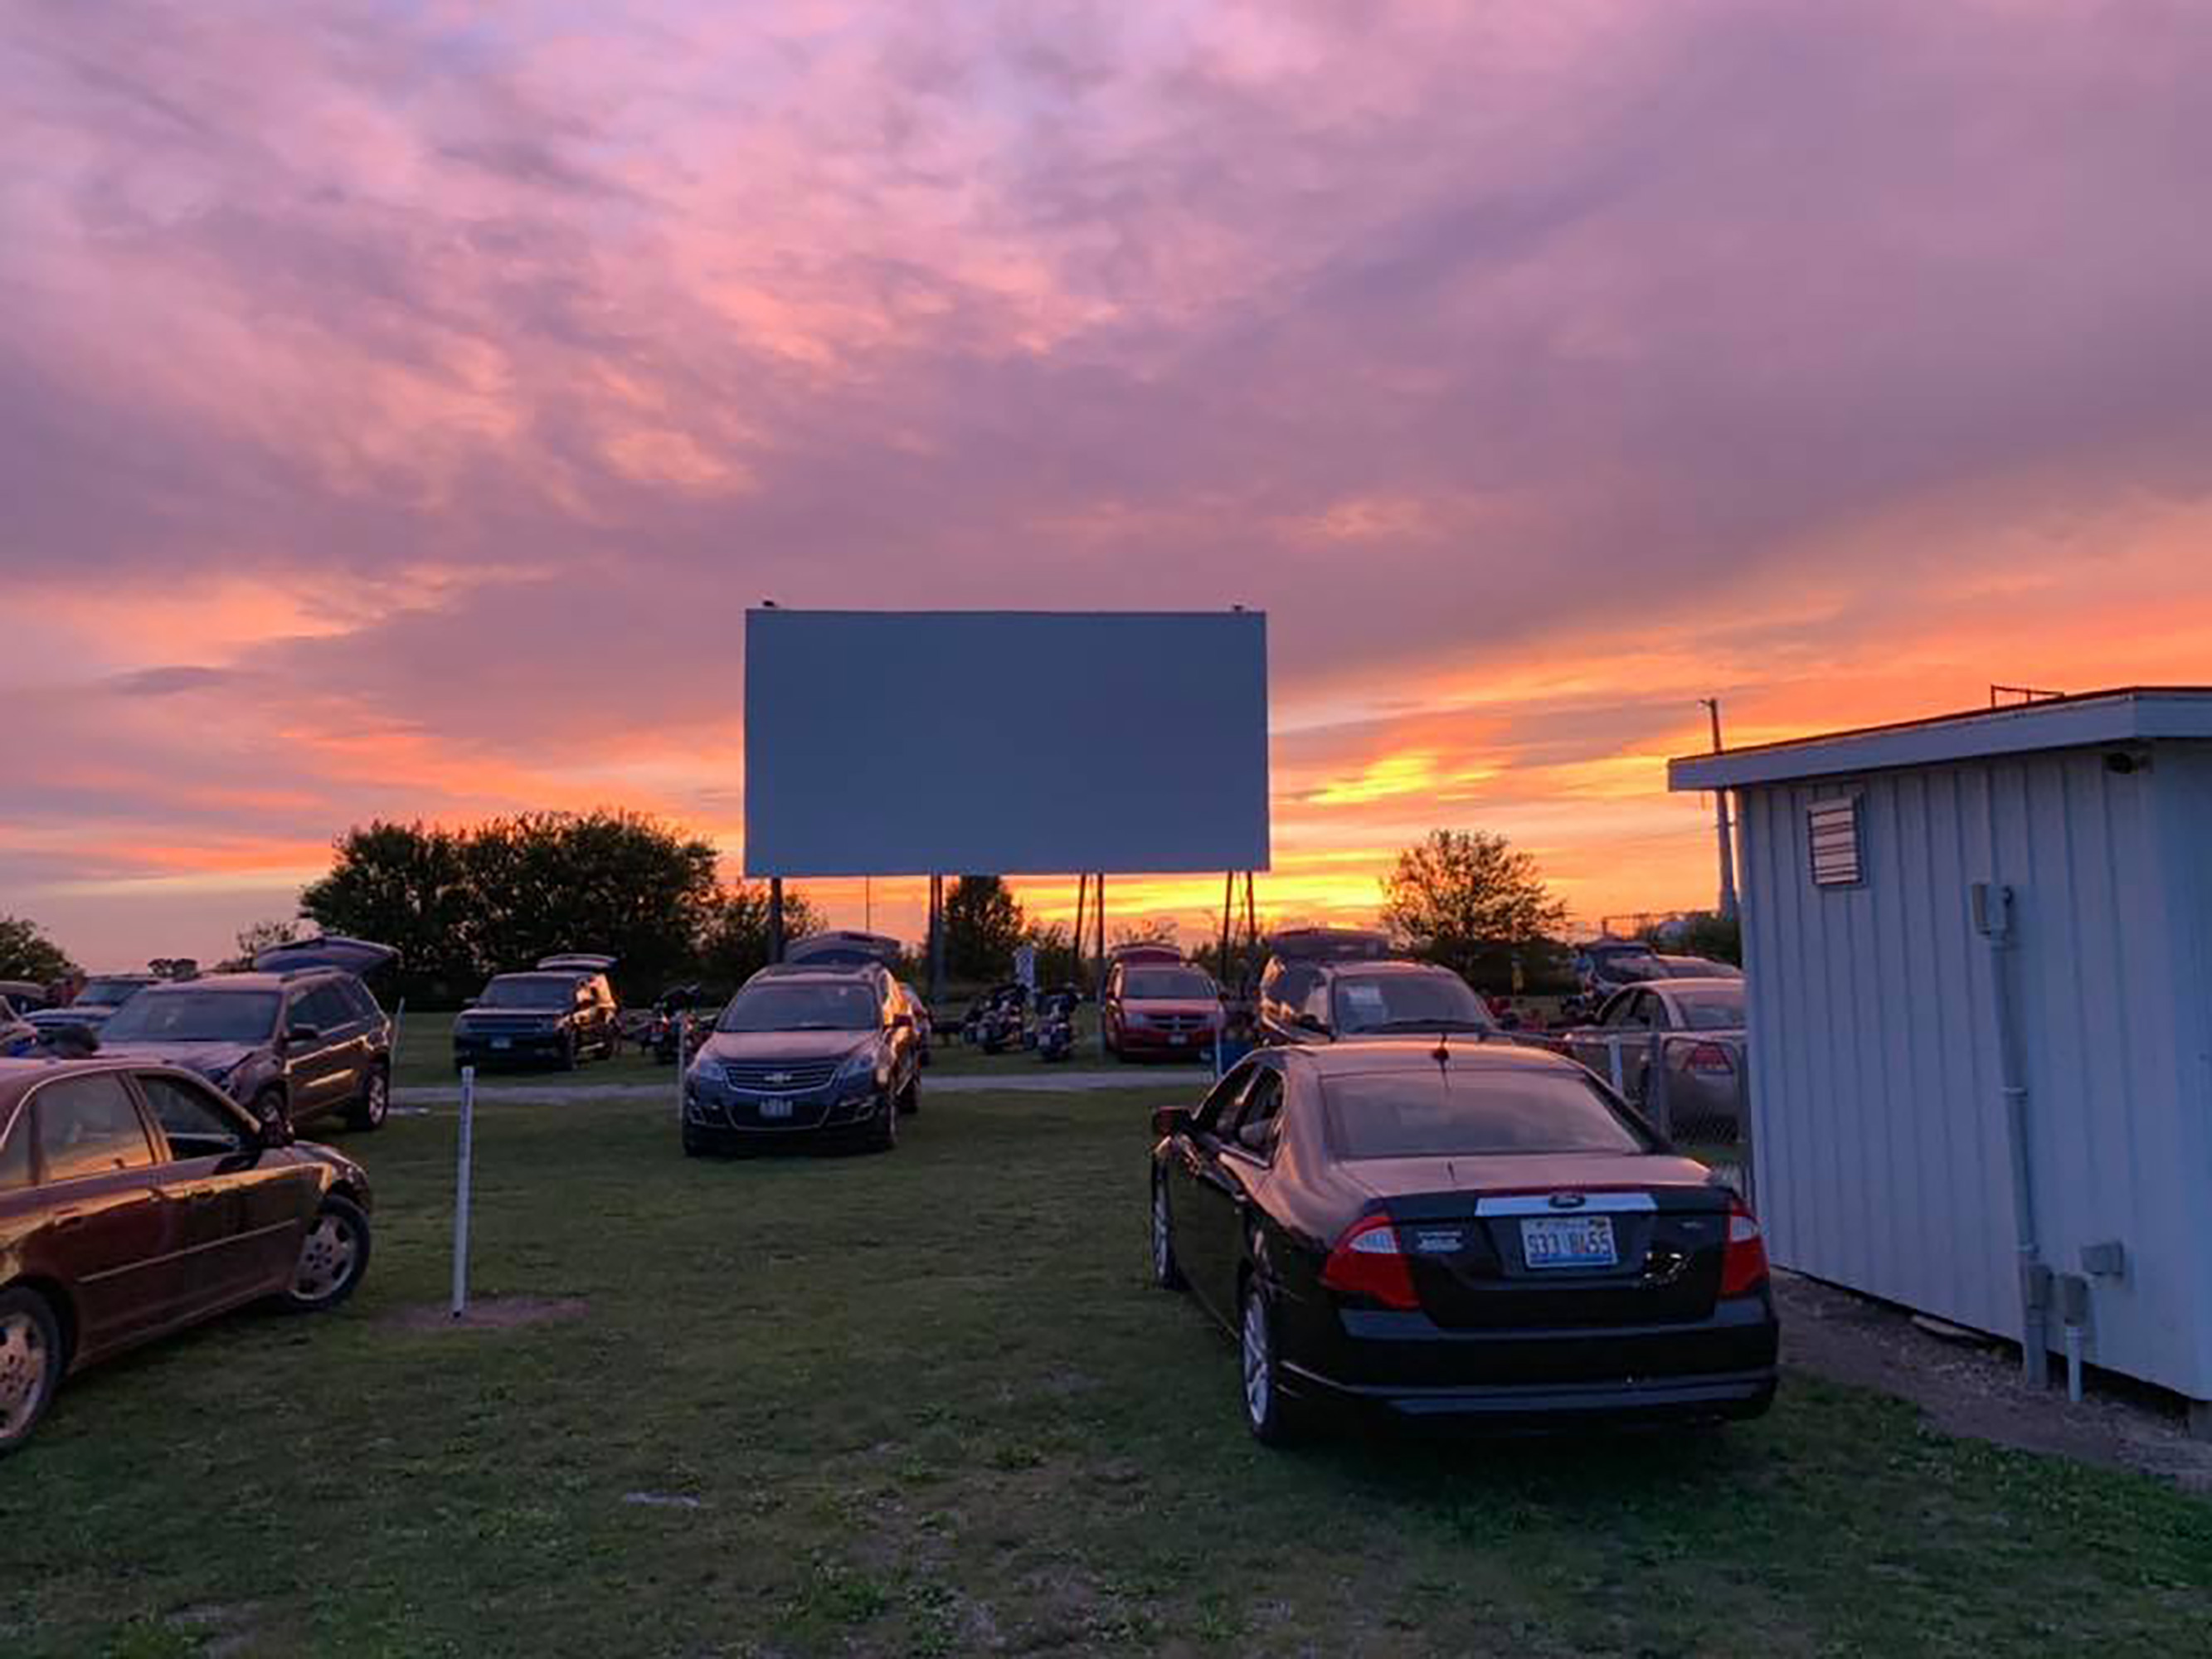 While cars do create a strain on environmental resources, this drive-in theater does everything it can to offset that—including powering their theaters with renewable energy. According to TreeHugger, the Harvest Moon Drive-In Theater in Gibson is the first—and likely the only—theater to be completely powered by nearby wind turbines. To cement their commitment to the environment, the staff at the theater also use recycled packaging and service ware at their snack bar, and uses LED lighting inside the grounds.